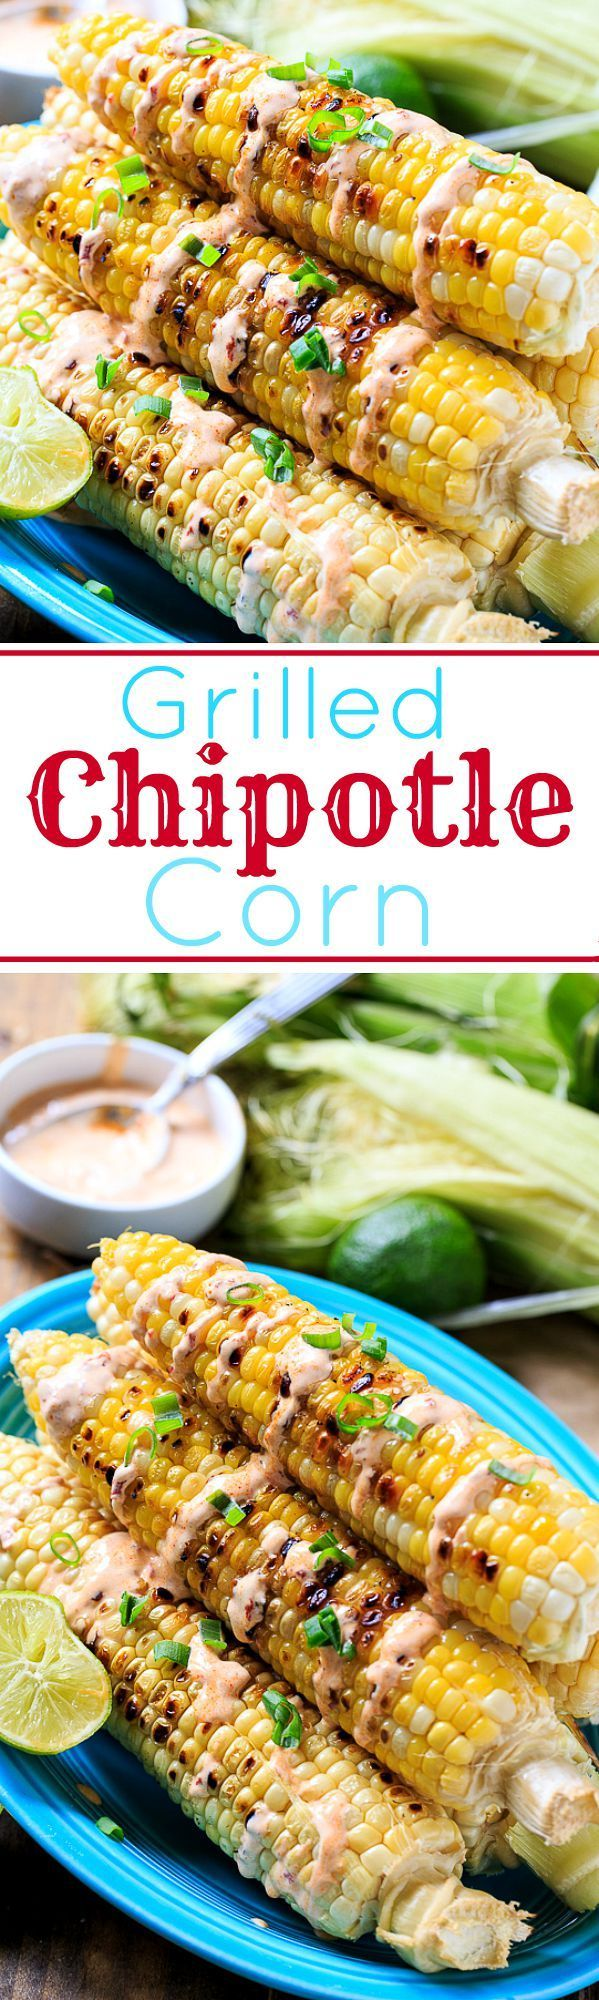 Grilled Corn with Chipotle Mayo spicysouthernkitchen.com